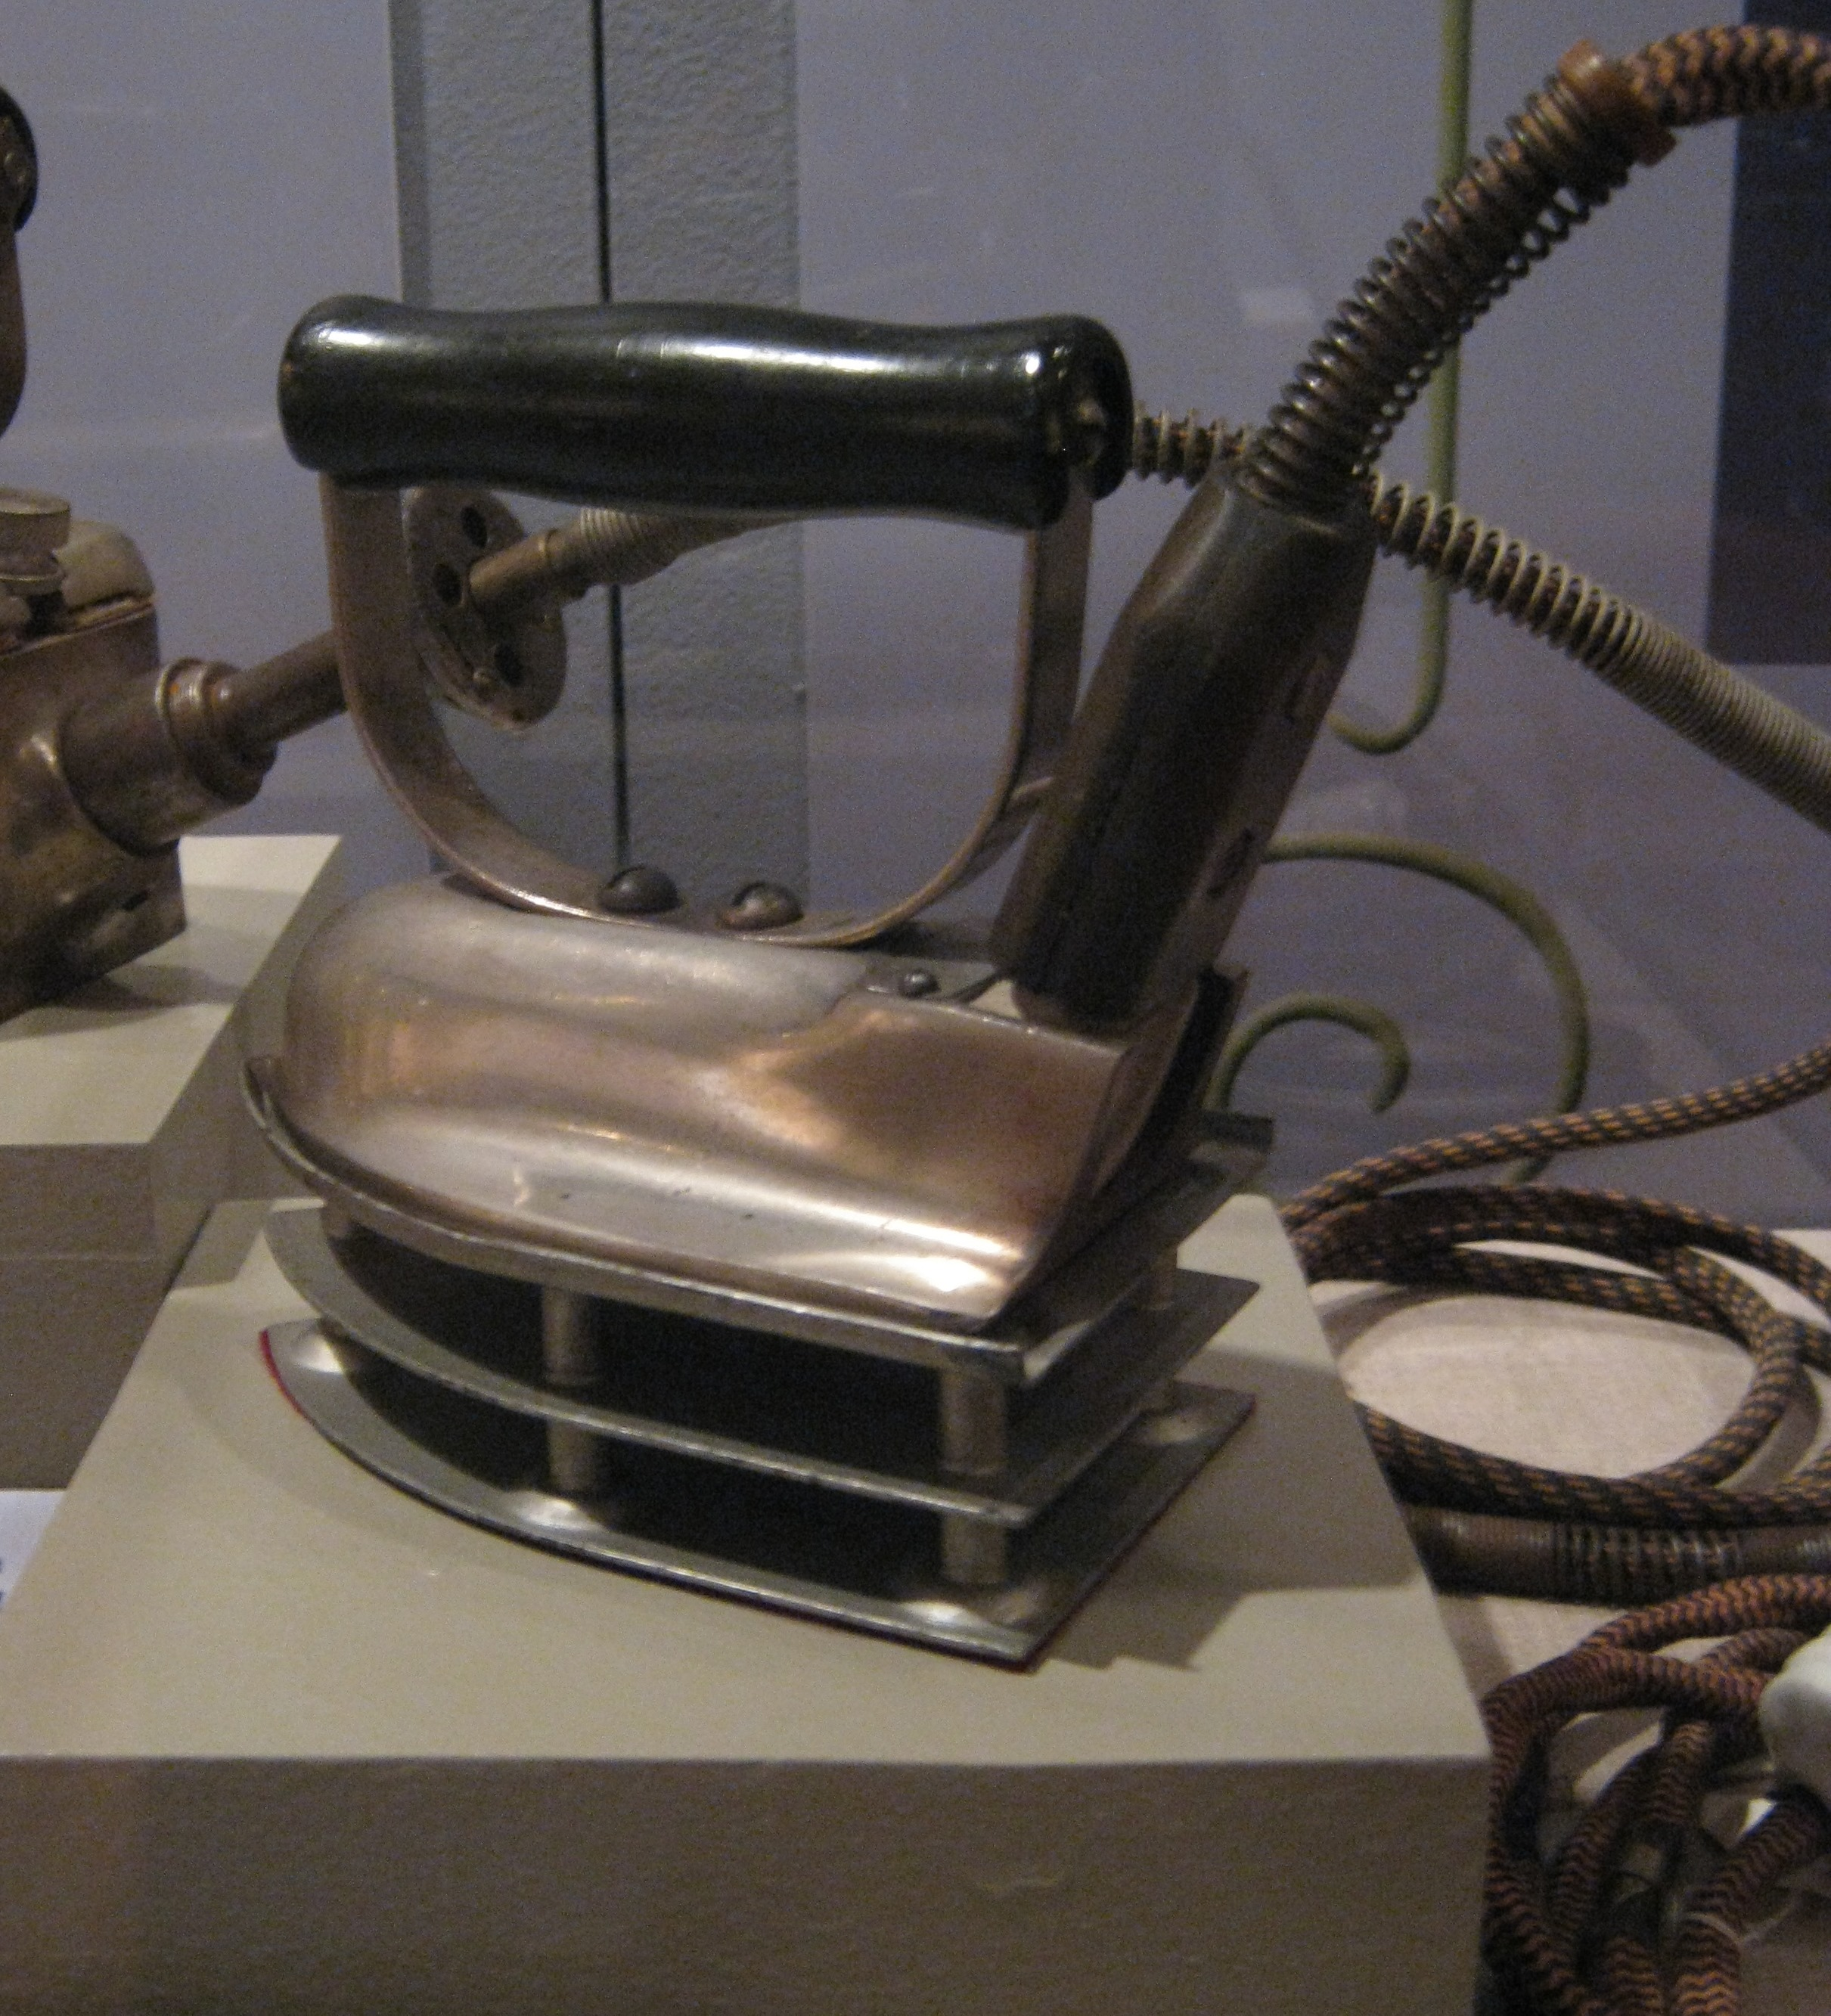 Electric Irons From The 1900s ~ Creating the ideal home comfort and